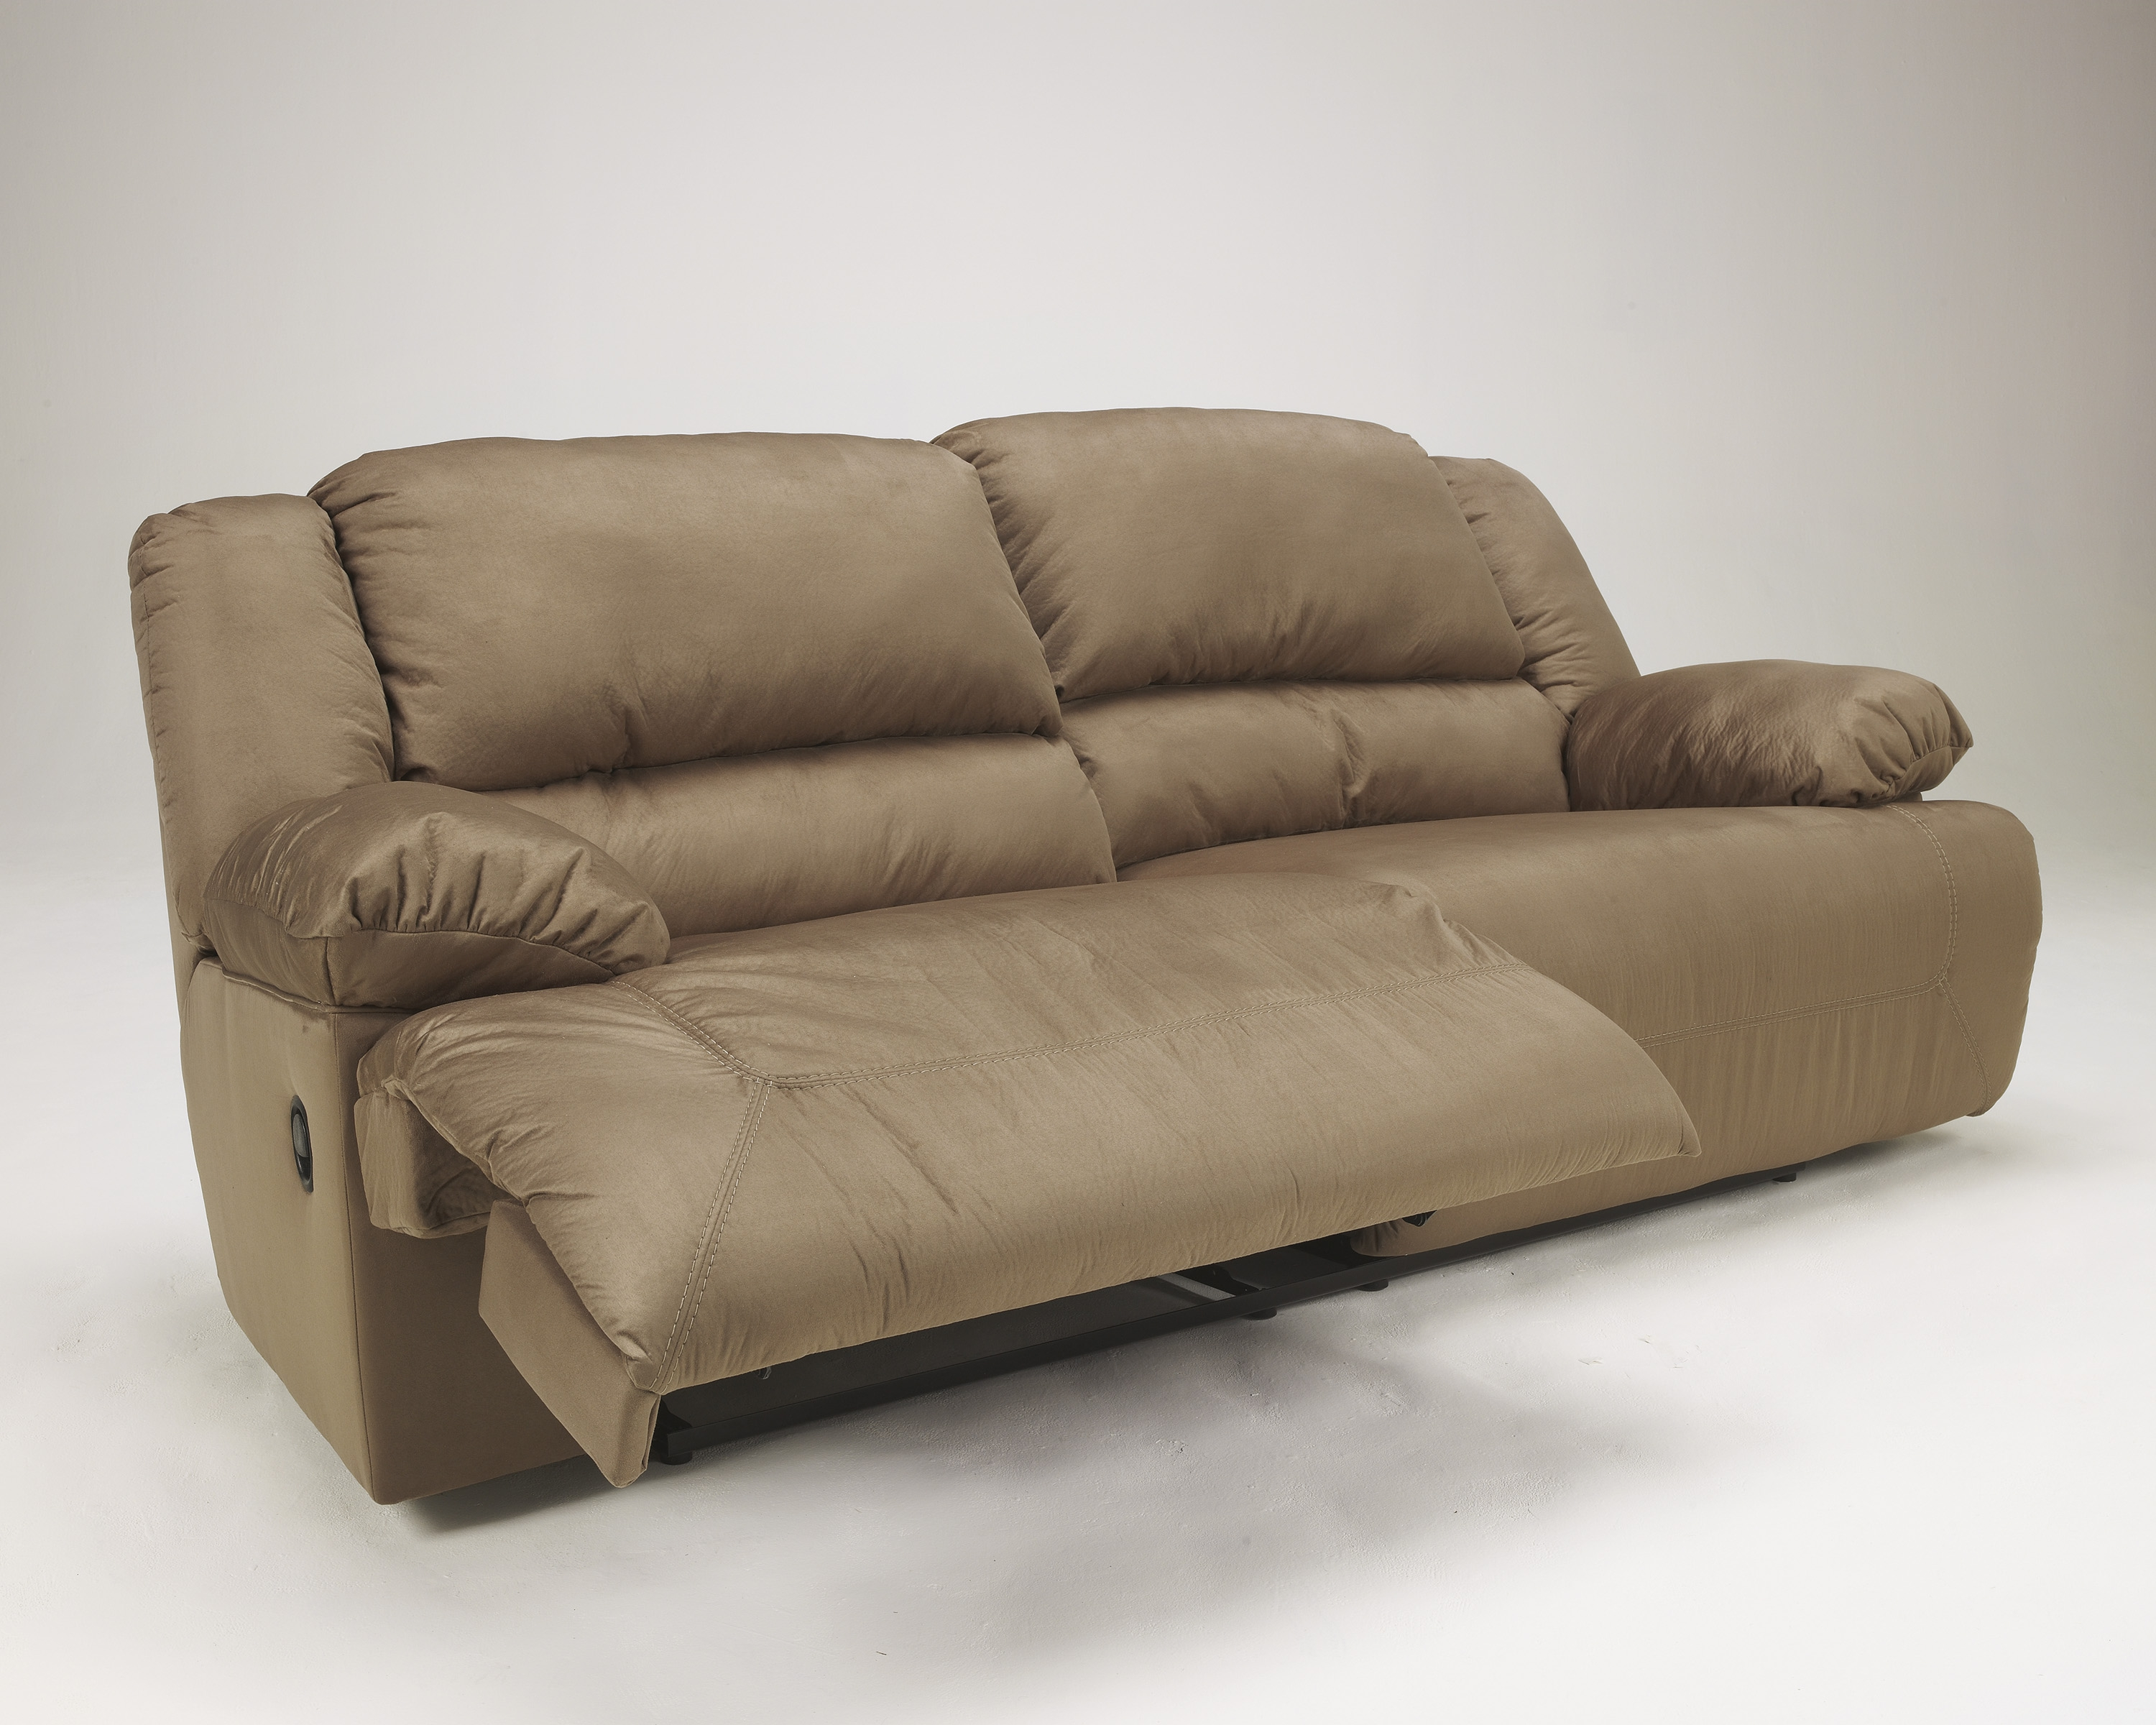 Hogan Contemporary Mocha 2 Seat Reclining Sofa